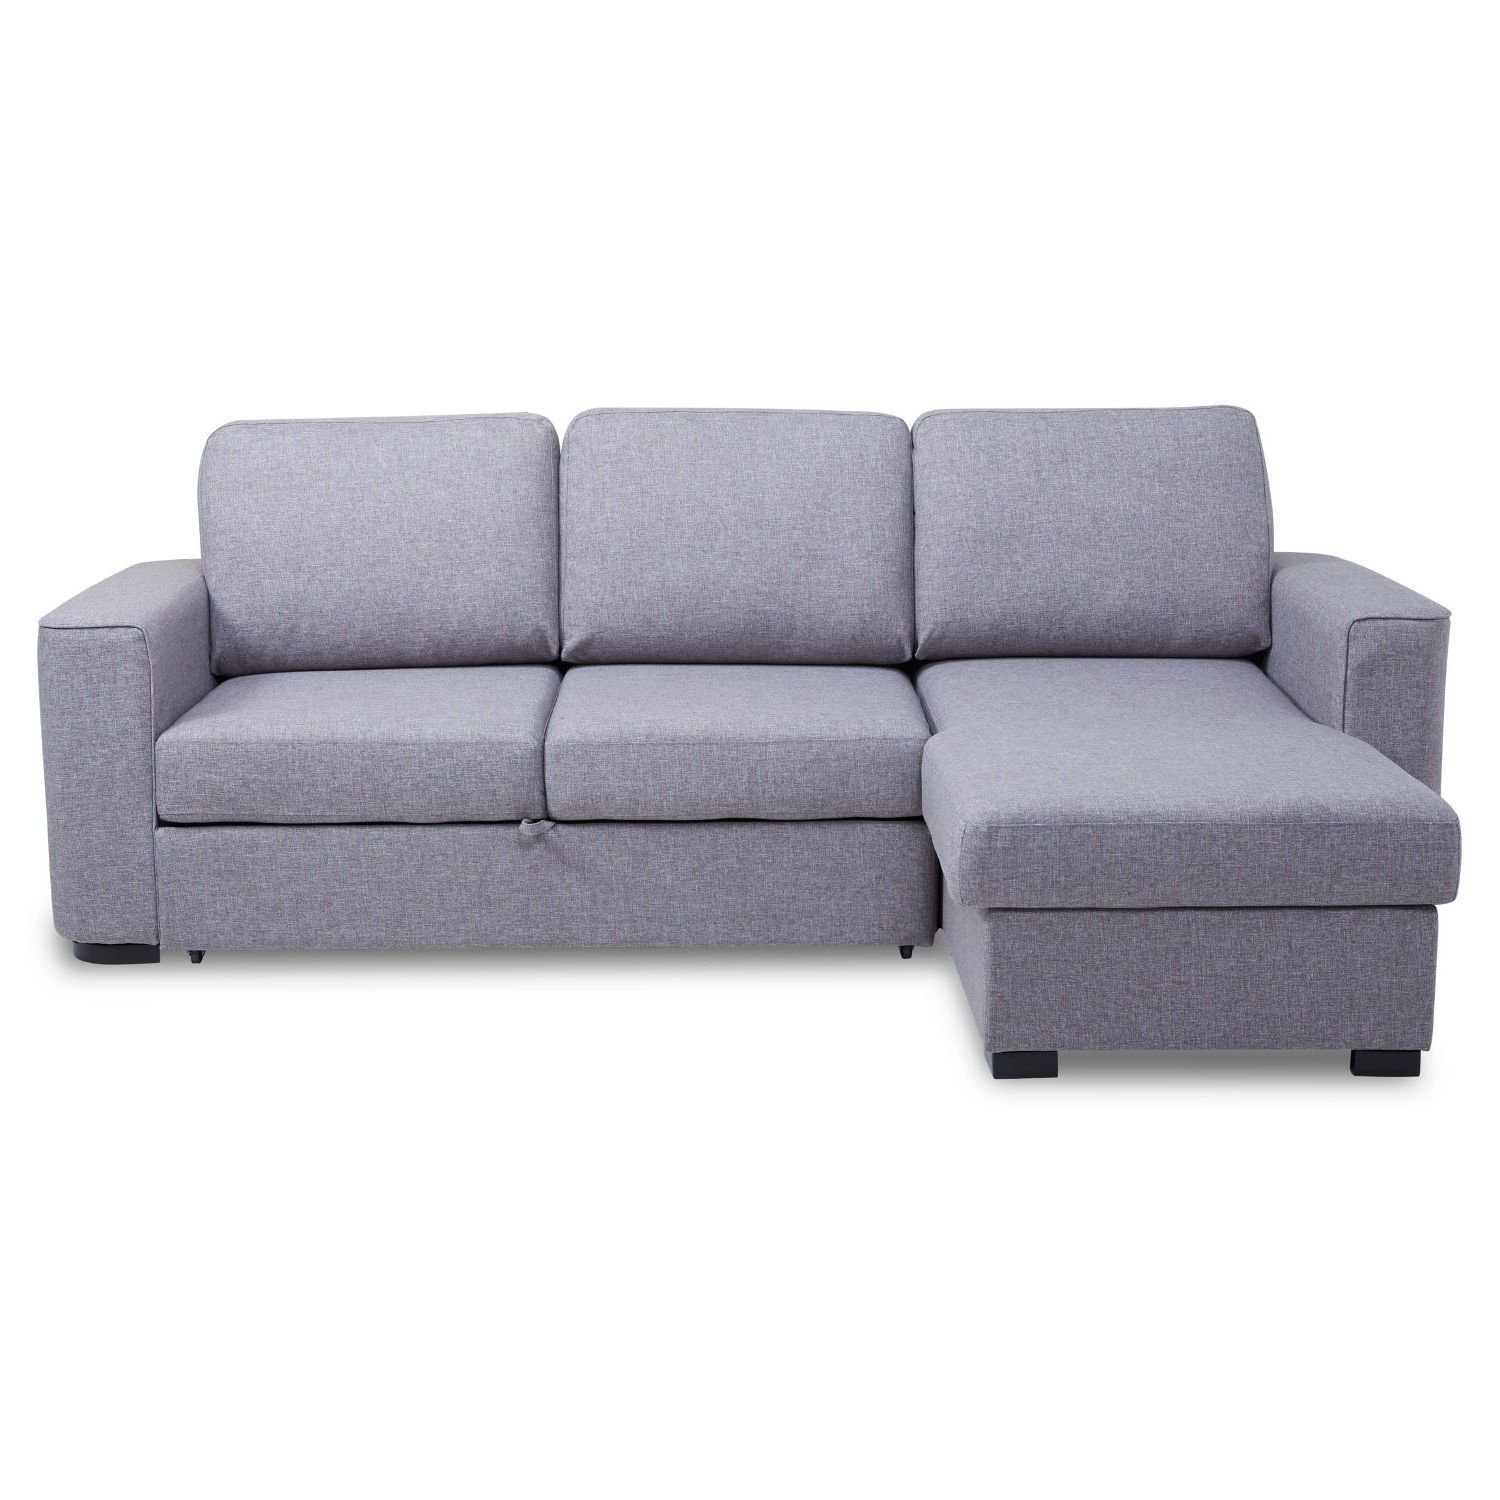 Ronny Fabric Corner Chaise Sofa Bed with Storage – Next Day ...